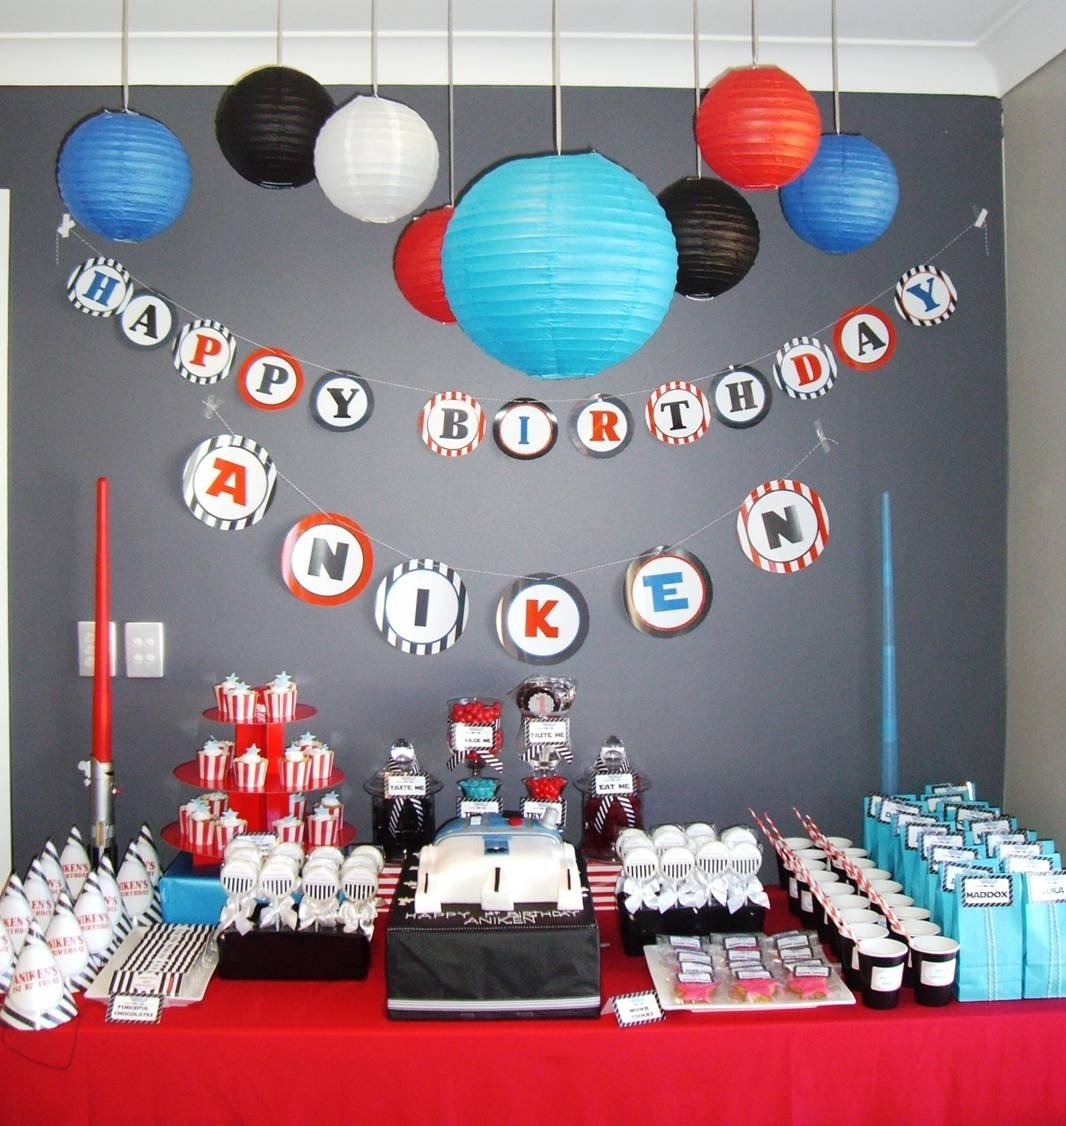 10 Most Recommended 5 Yr Old Boy Birthday Party Ideas creative birthday party ideas for boys 78 images about 5 year old 1